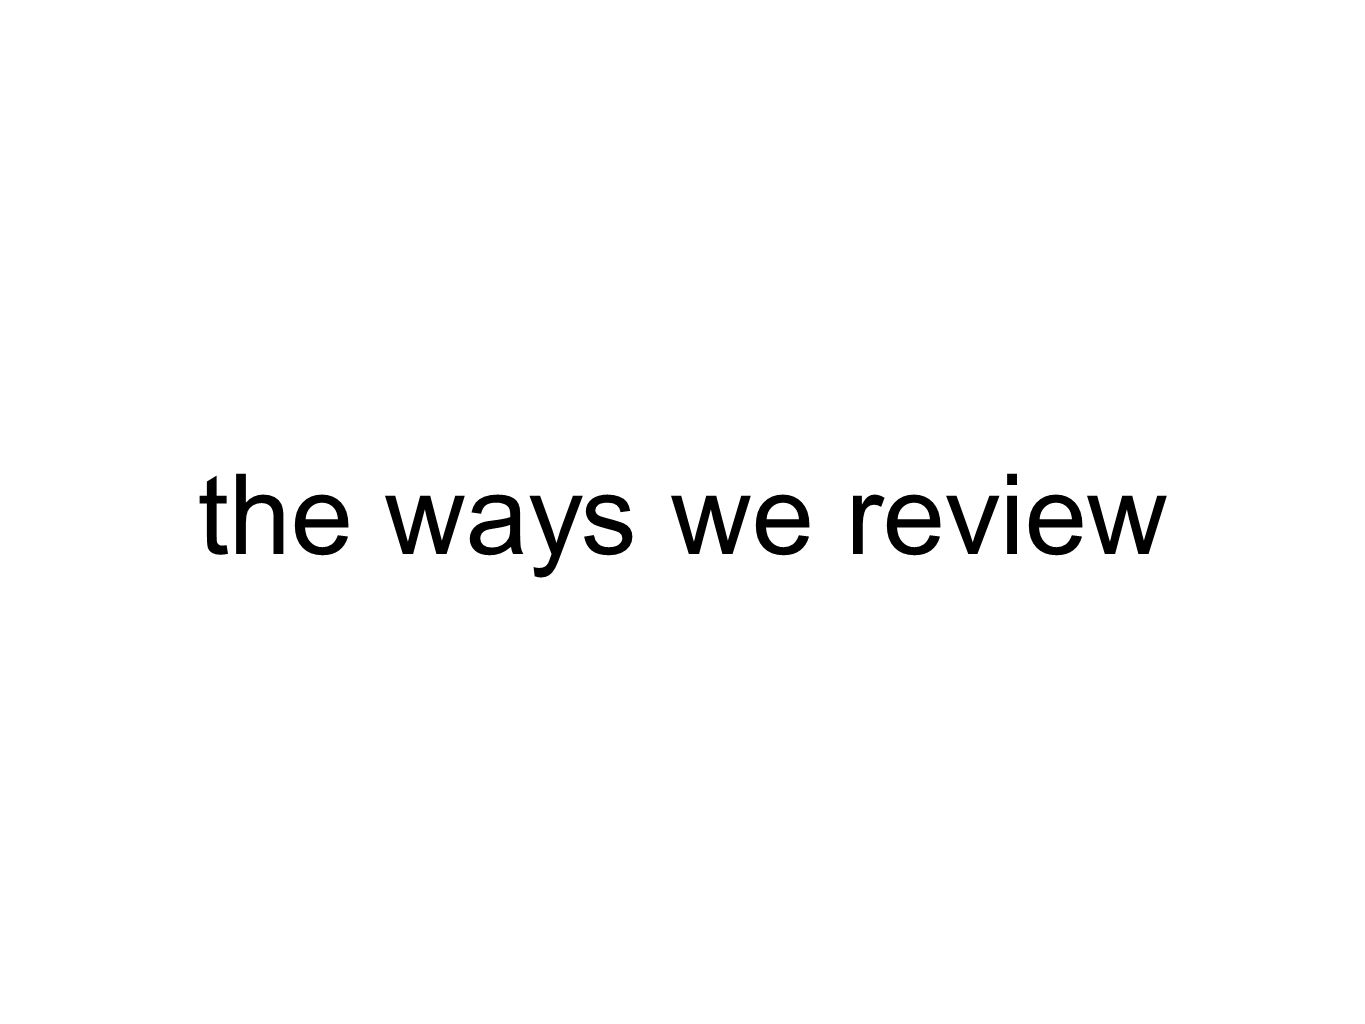 the ways we review